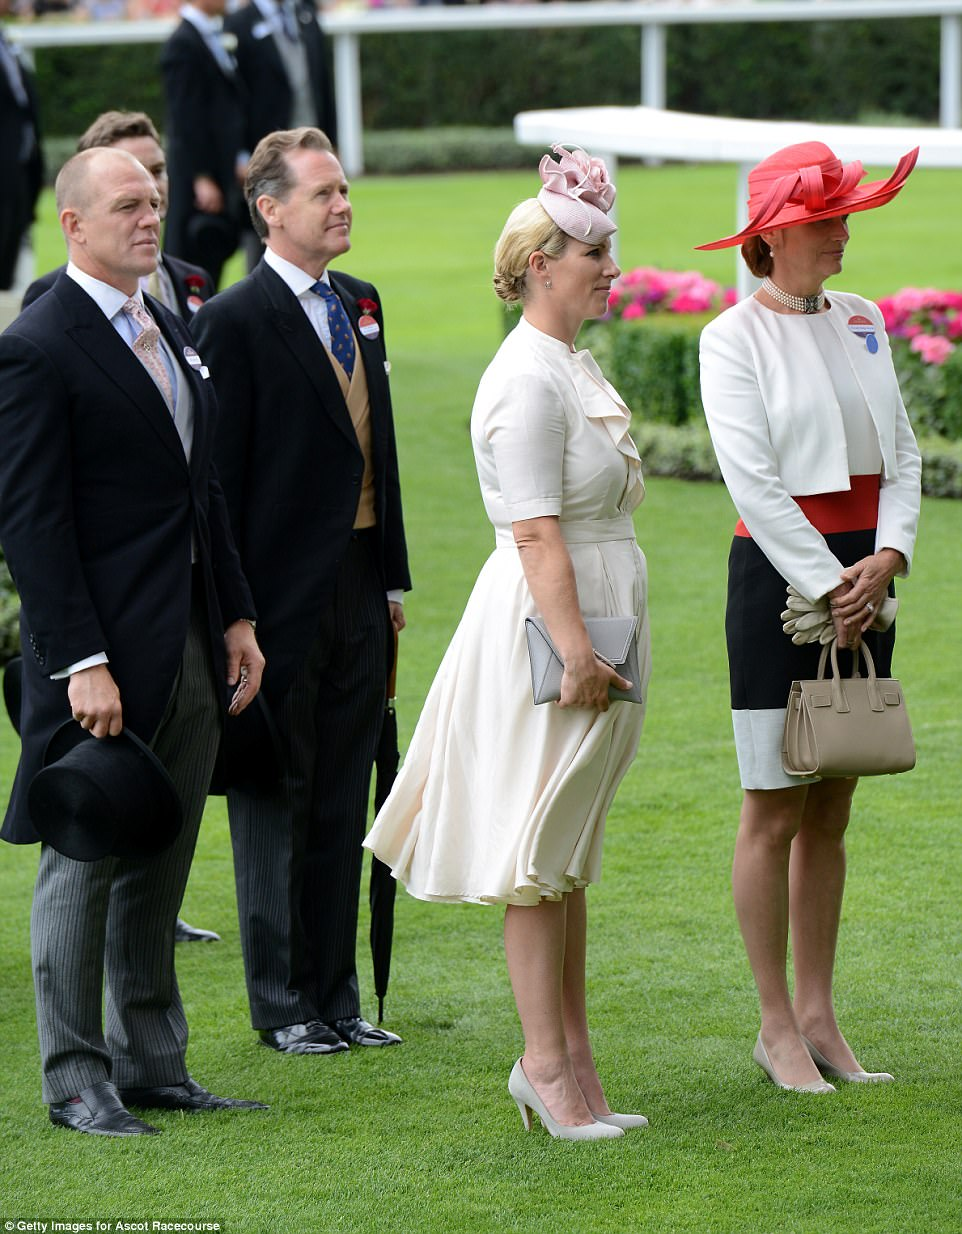 Mike Tindall and his wife Zara stand to attention as they wait the arrival of the Queen in the Parade Ring